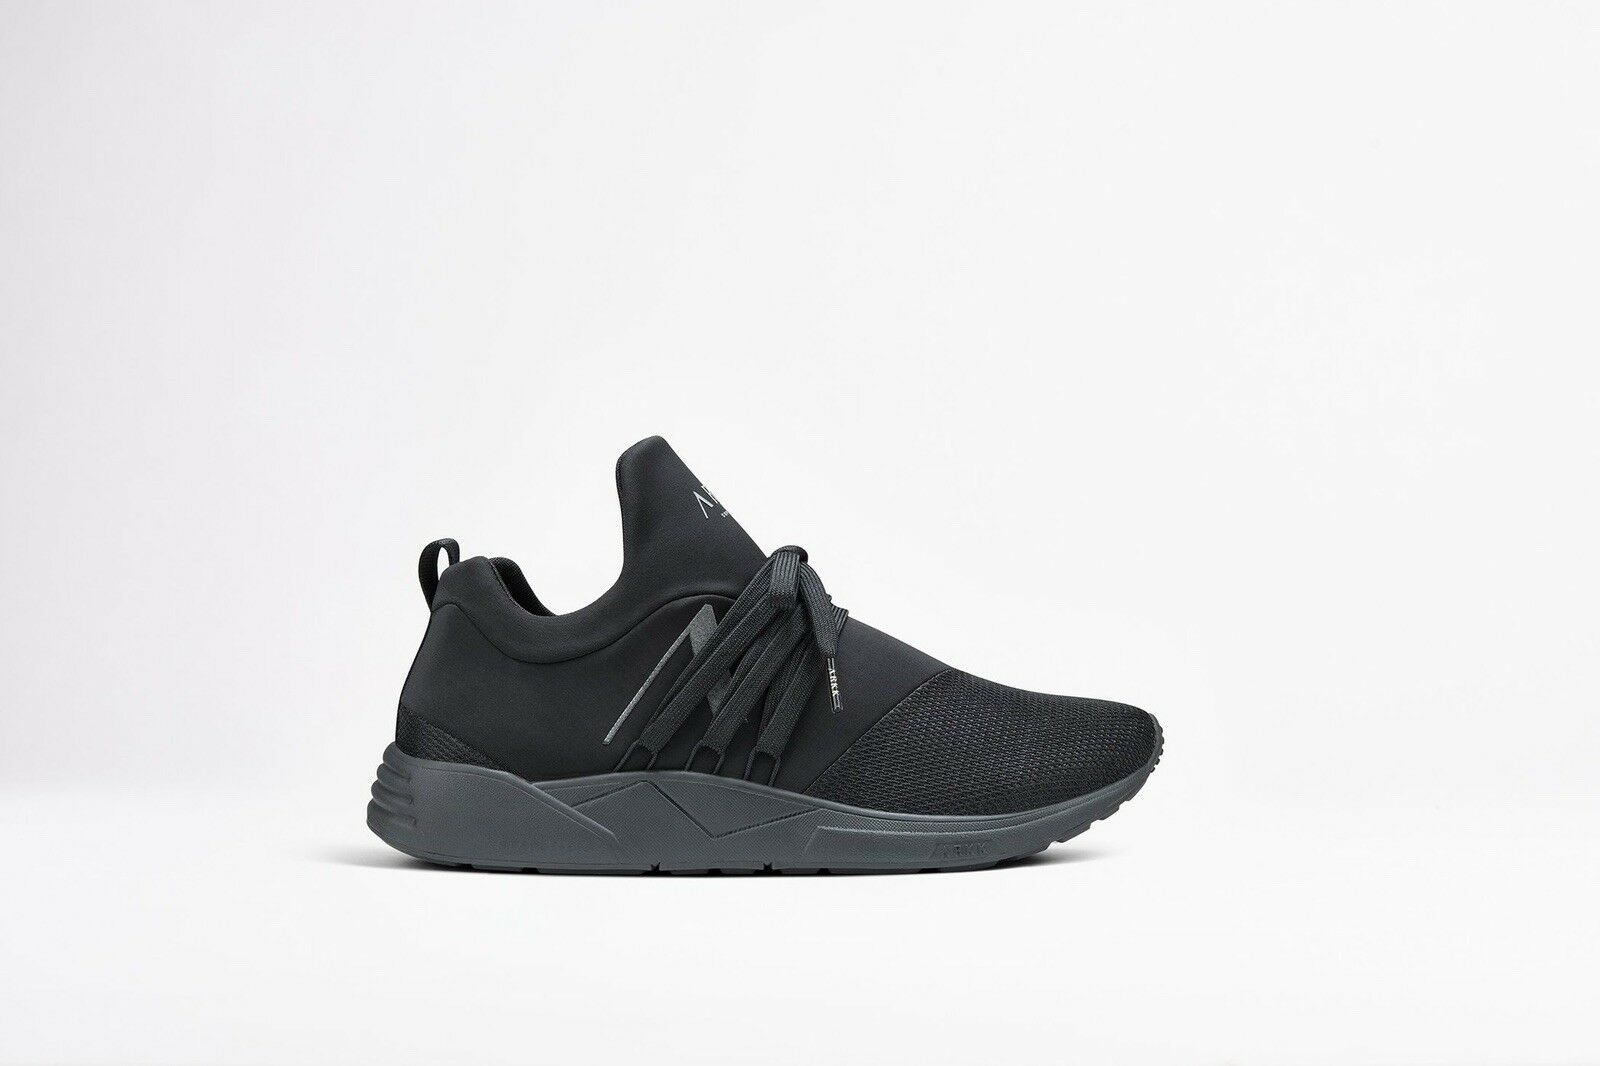 BNIB Arkk Copenhagen Copenhagen Copenhagen Raven Mesh S-E15 Black Reflective Sneakers Trainers Size 40 71be0a